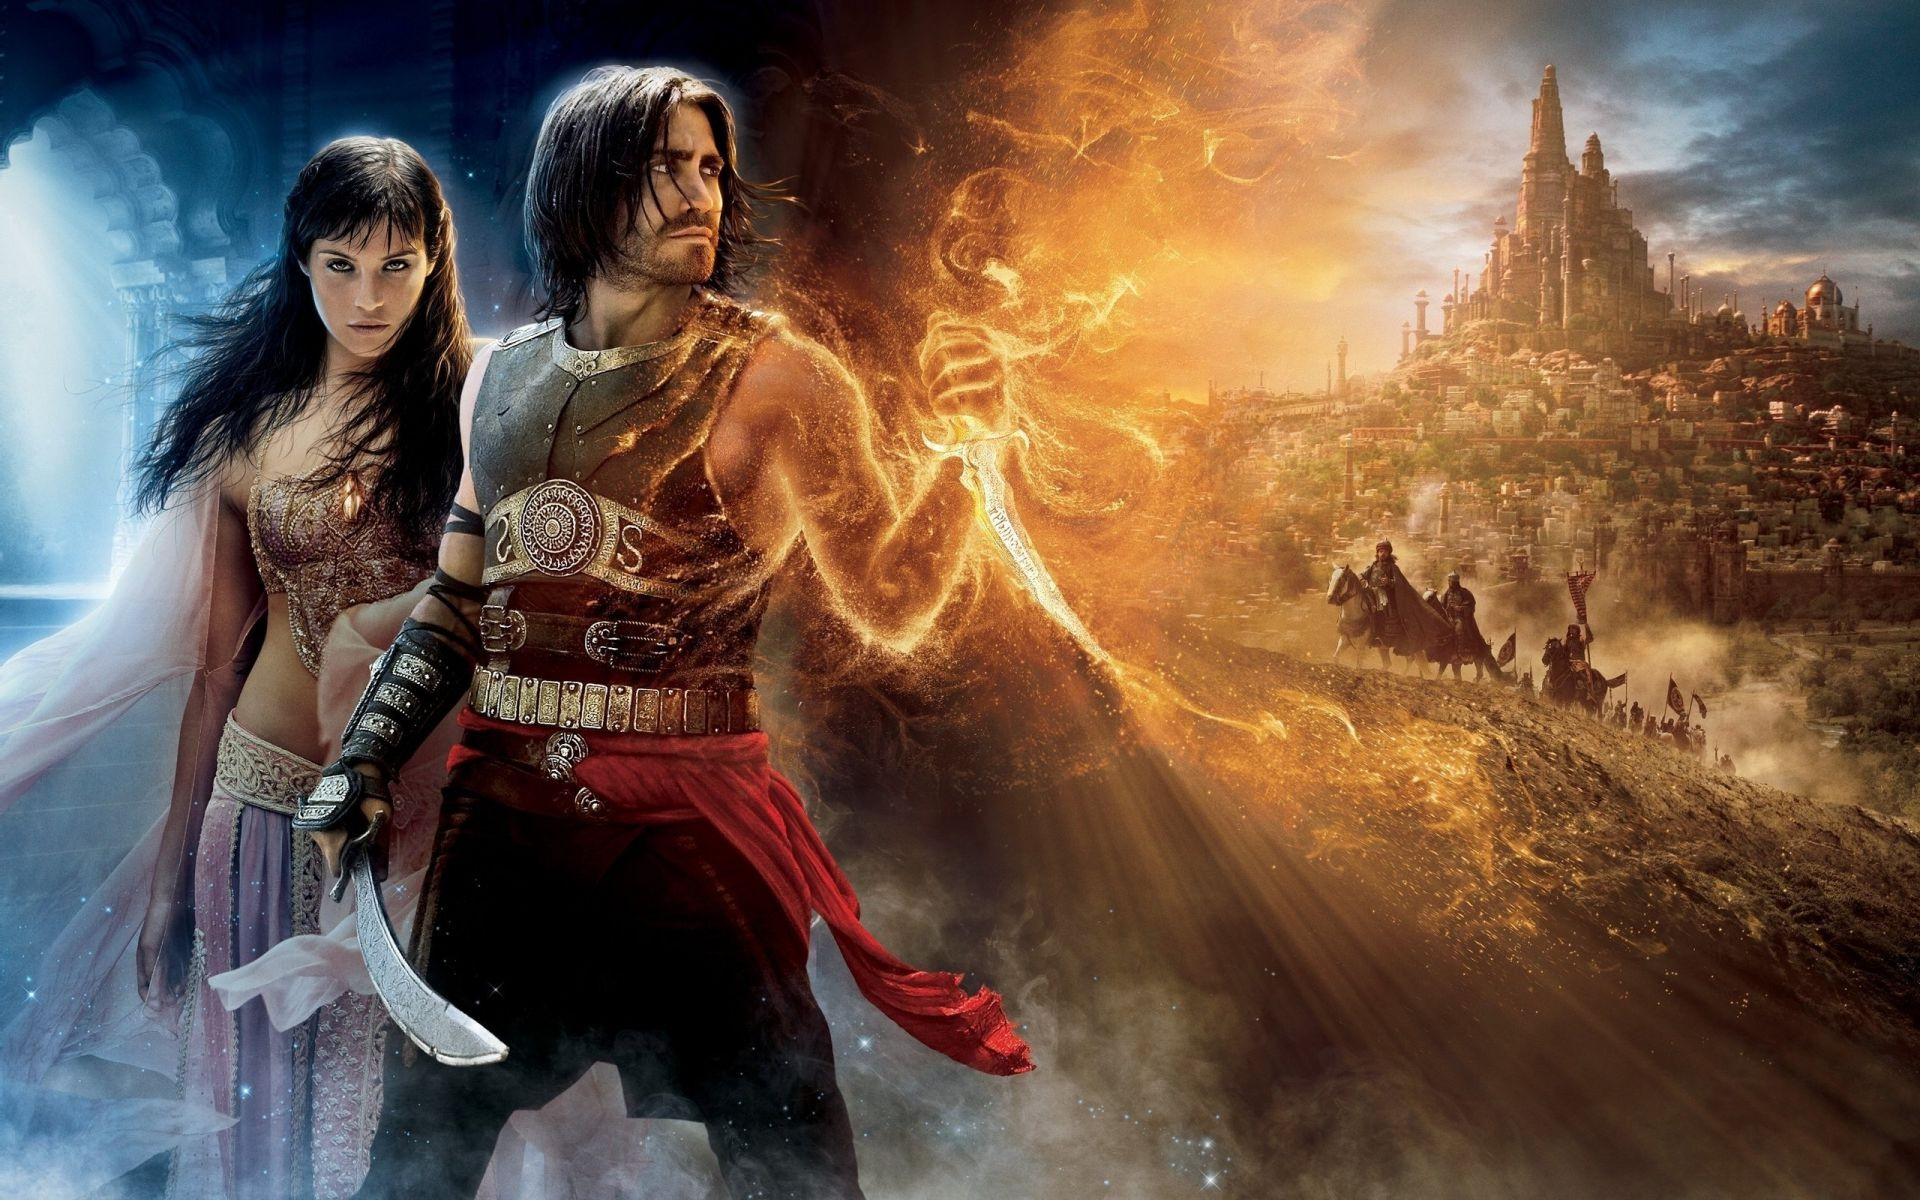 main characters Prince of Persia the Sands of time the magic dagger